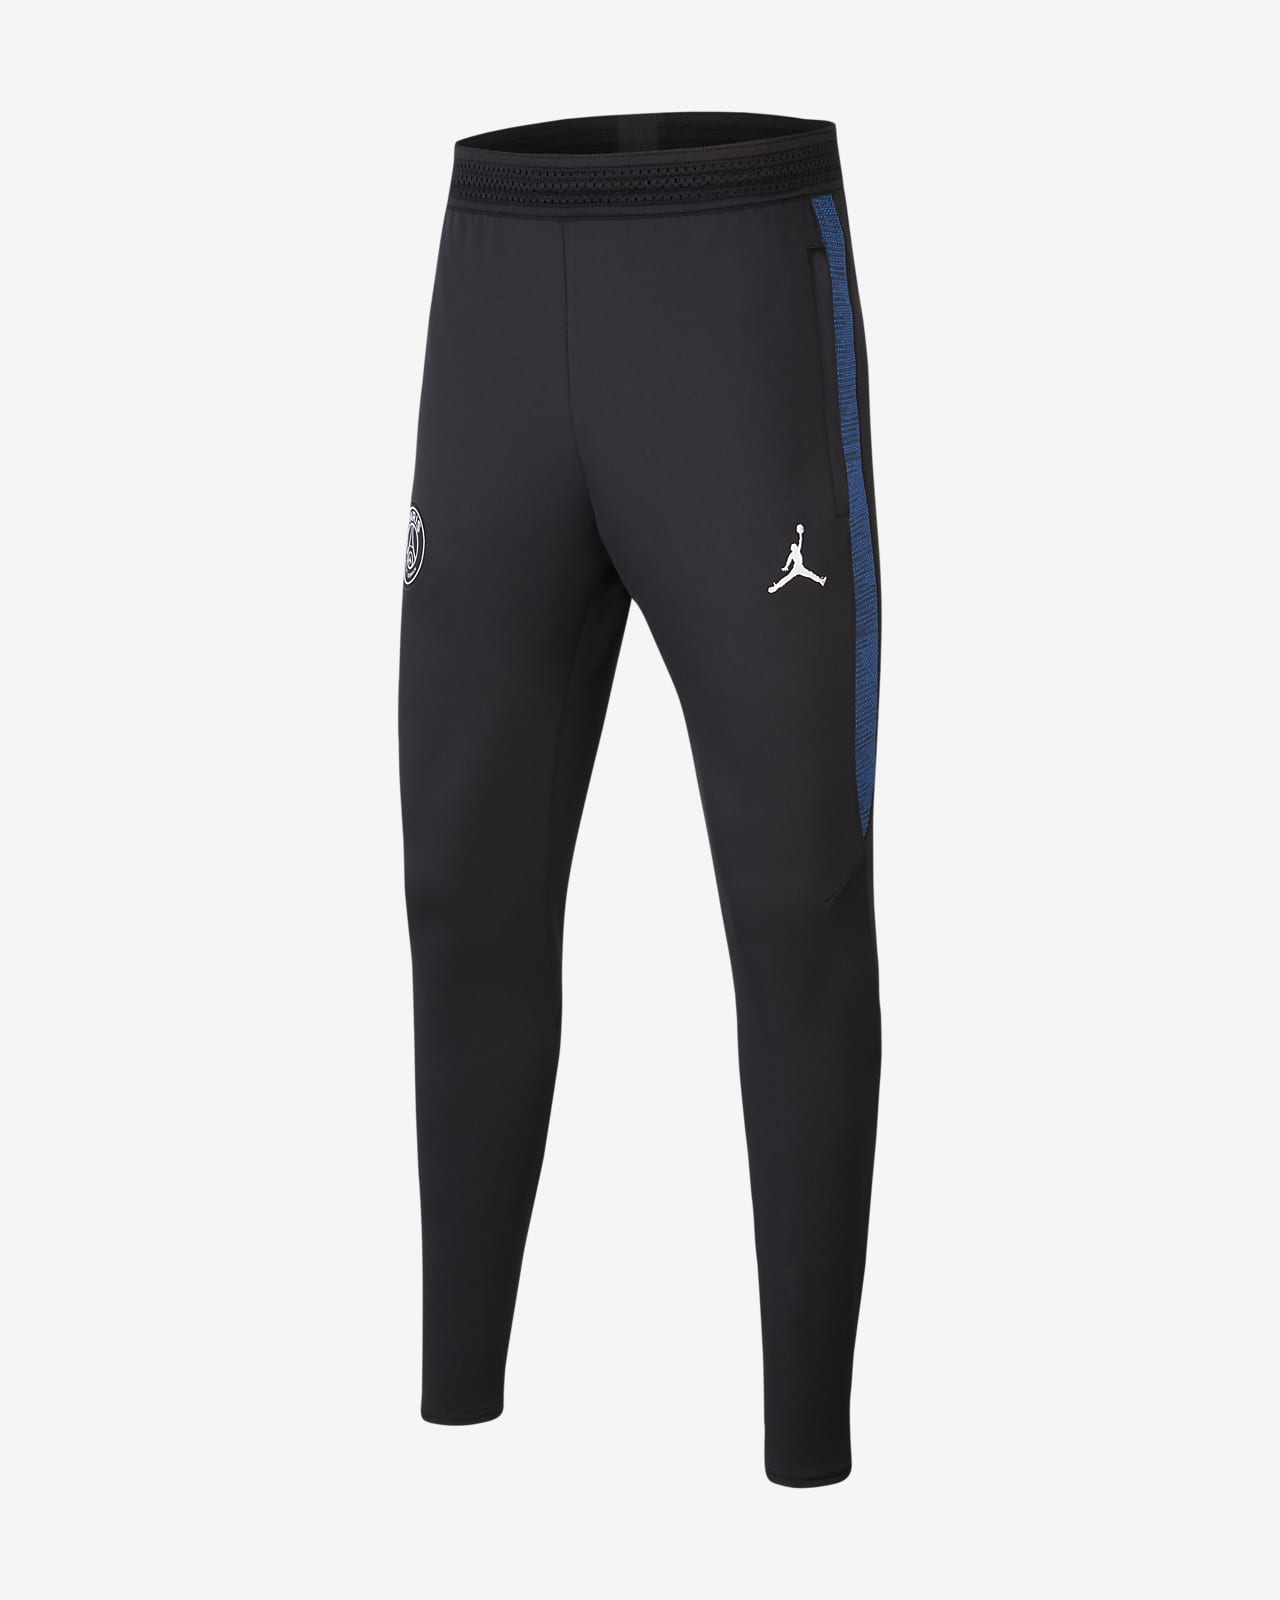 Jordan x Paris Saint-Germain Strike Older Kids' Football Pants